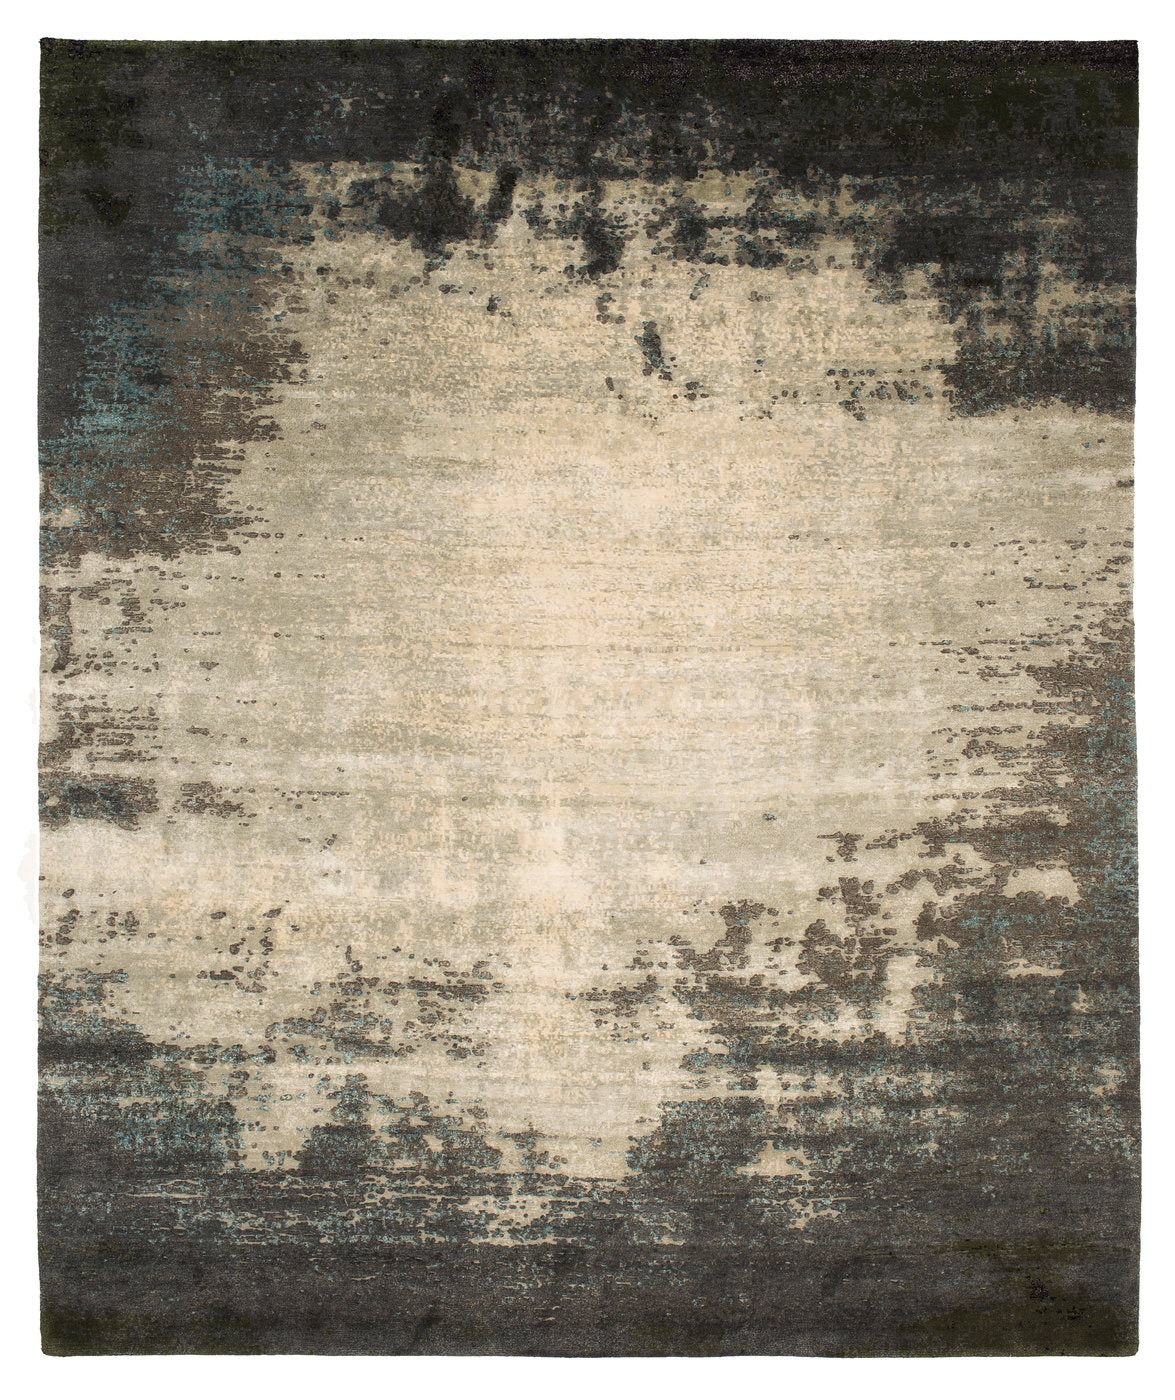 ARTWORK 25, Rugs//Tapis, Jan Kath  - SORS